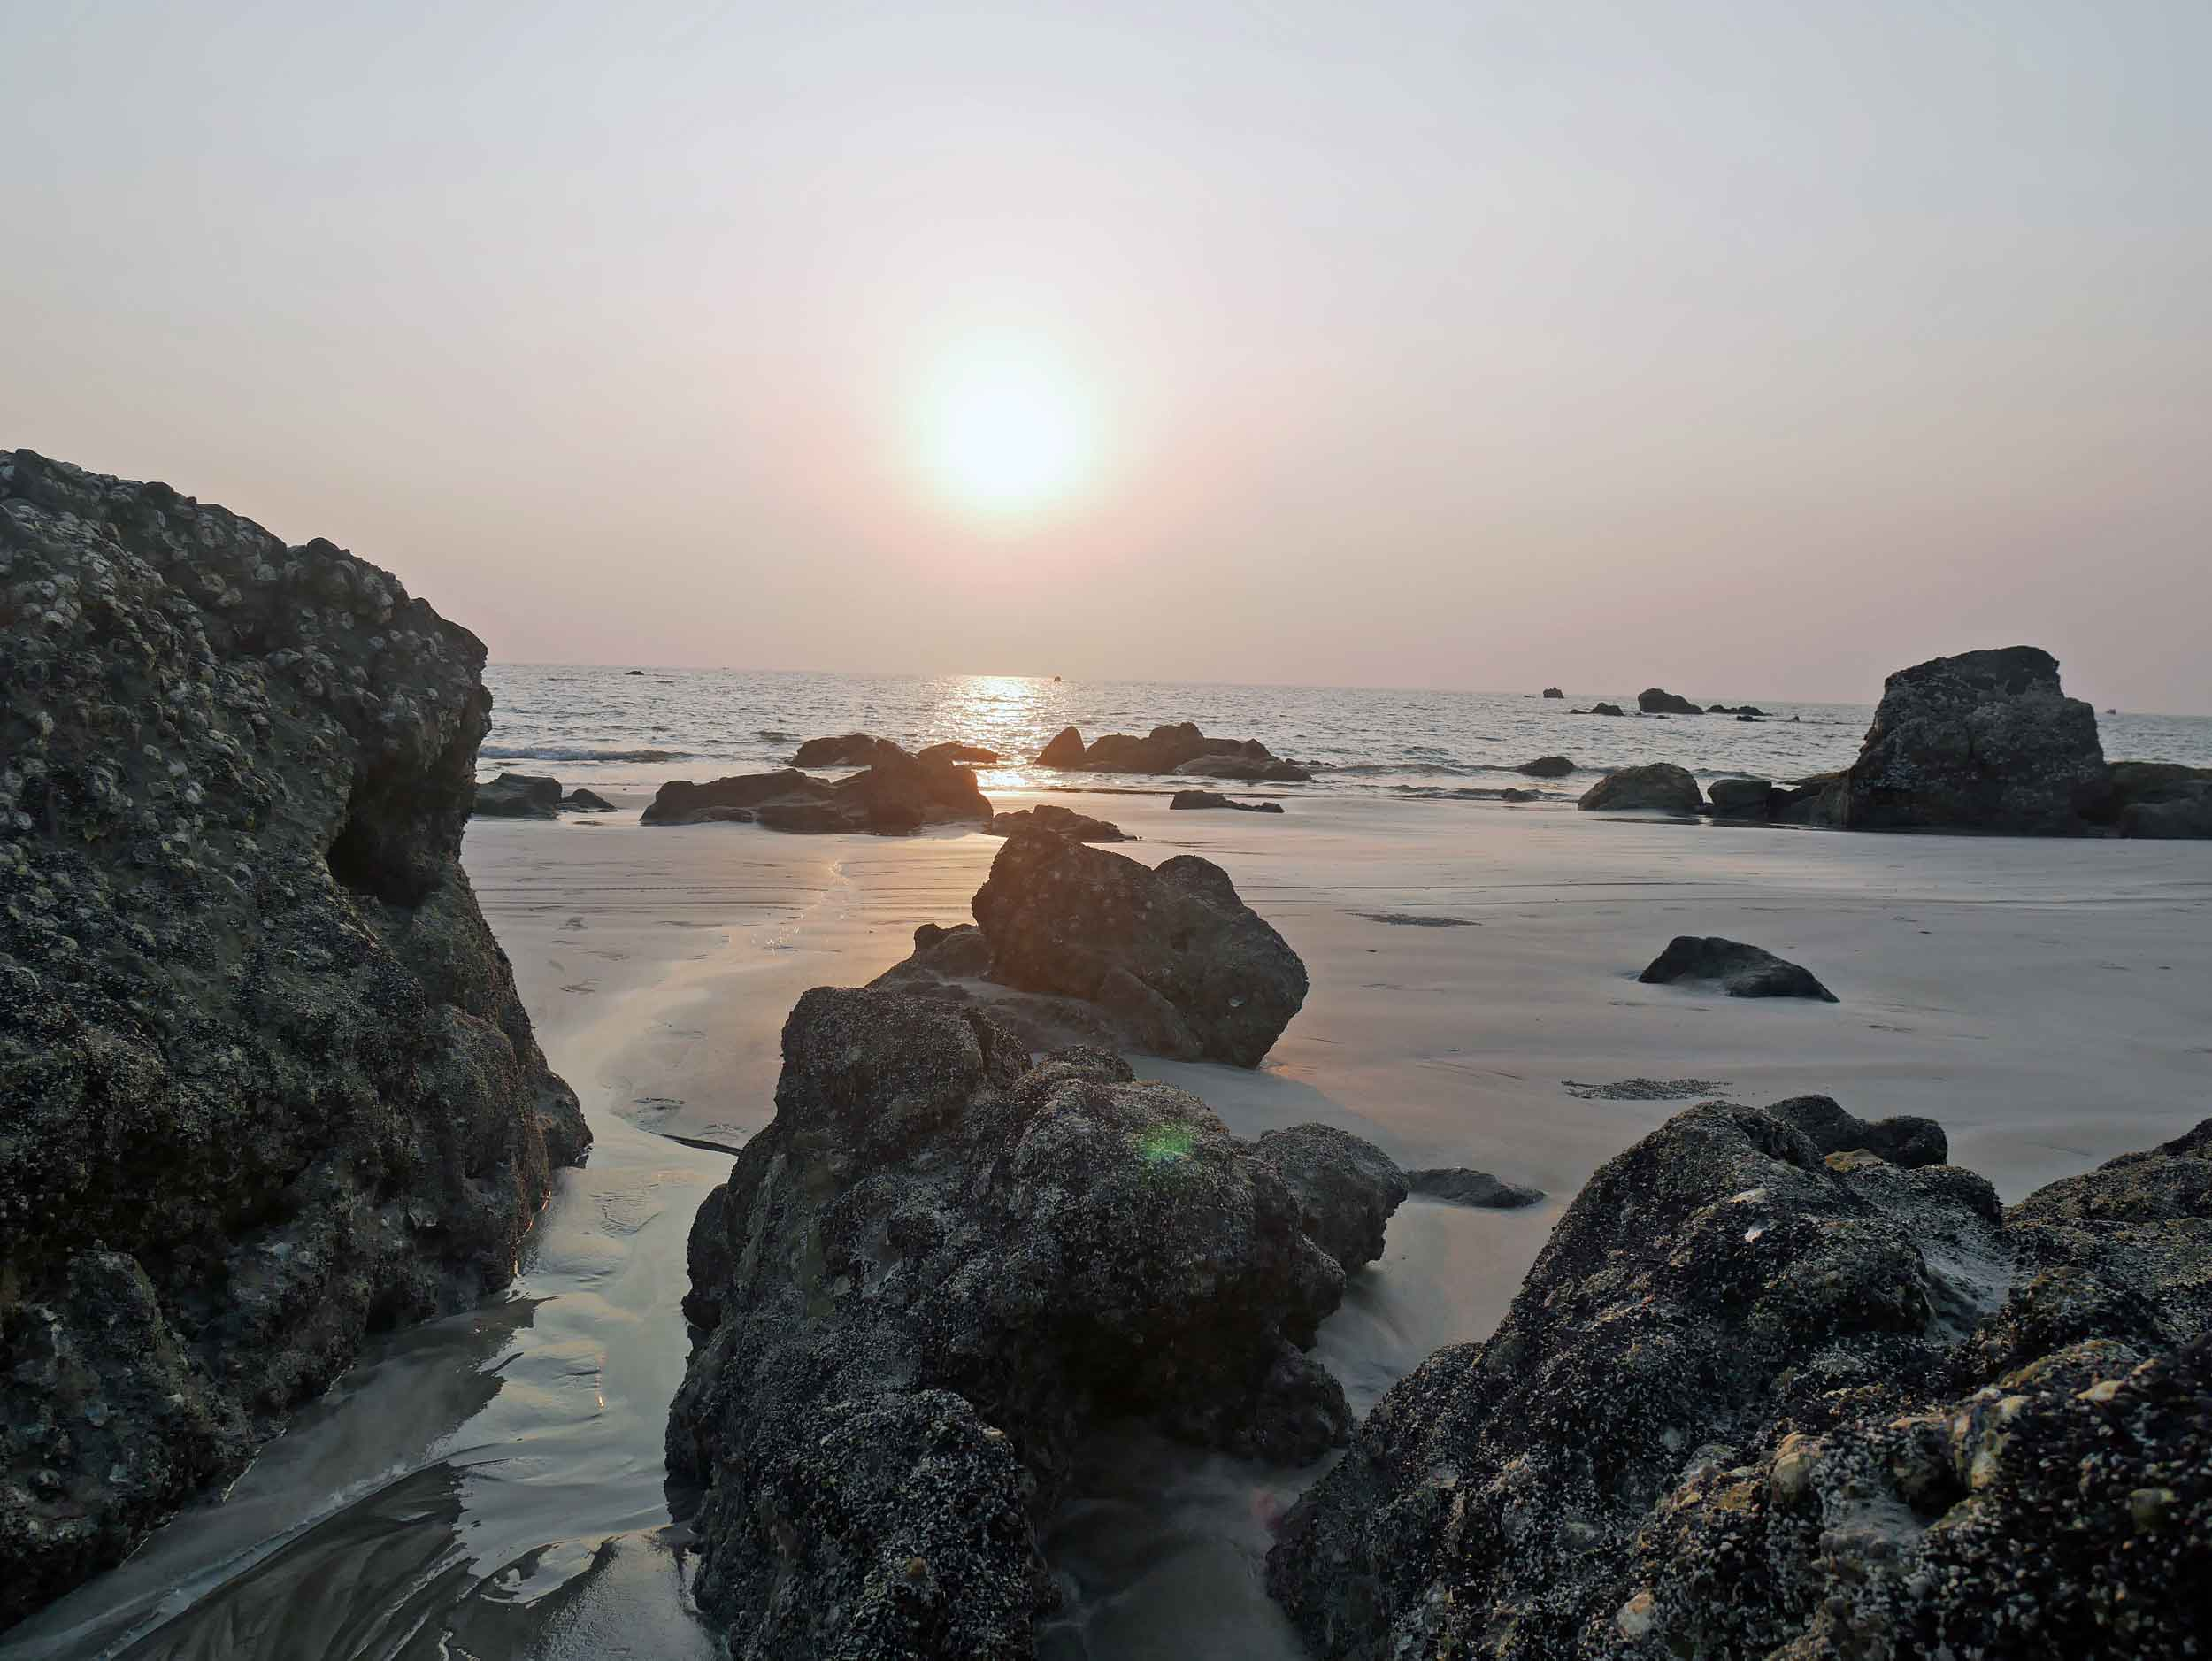 Long and wide Ngwesaung gently curves to reveal large rocks and finally, Lovers Island.